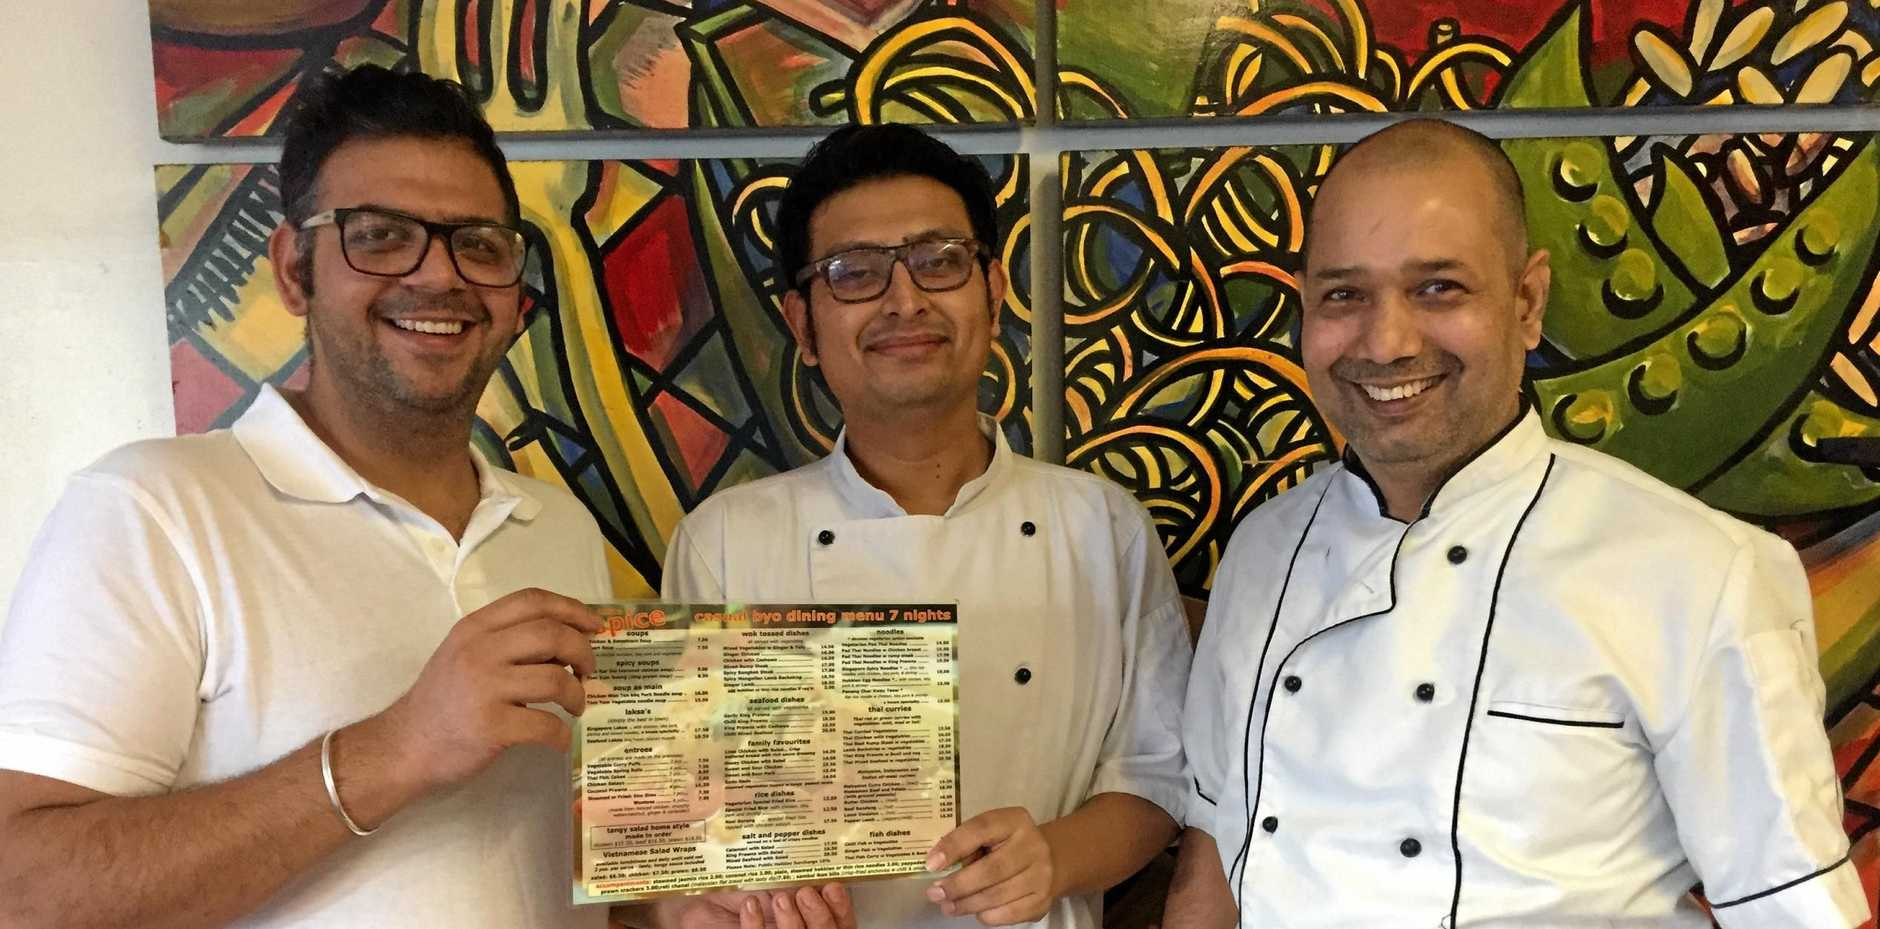 TOP TEAM: A Taste of Spice manager Nitish Dhingra, chef Bibek Manandhar and chef Anil Dutt.